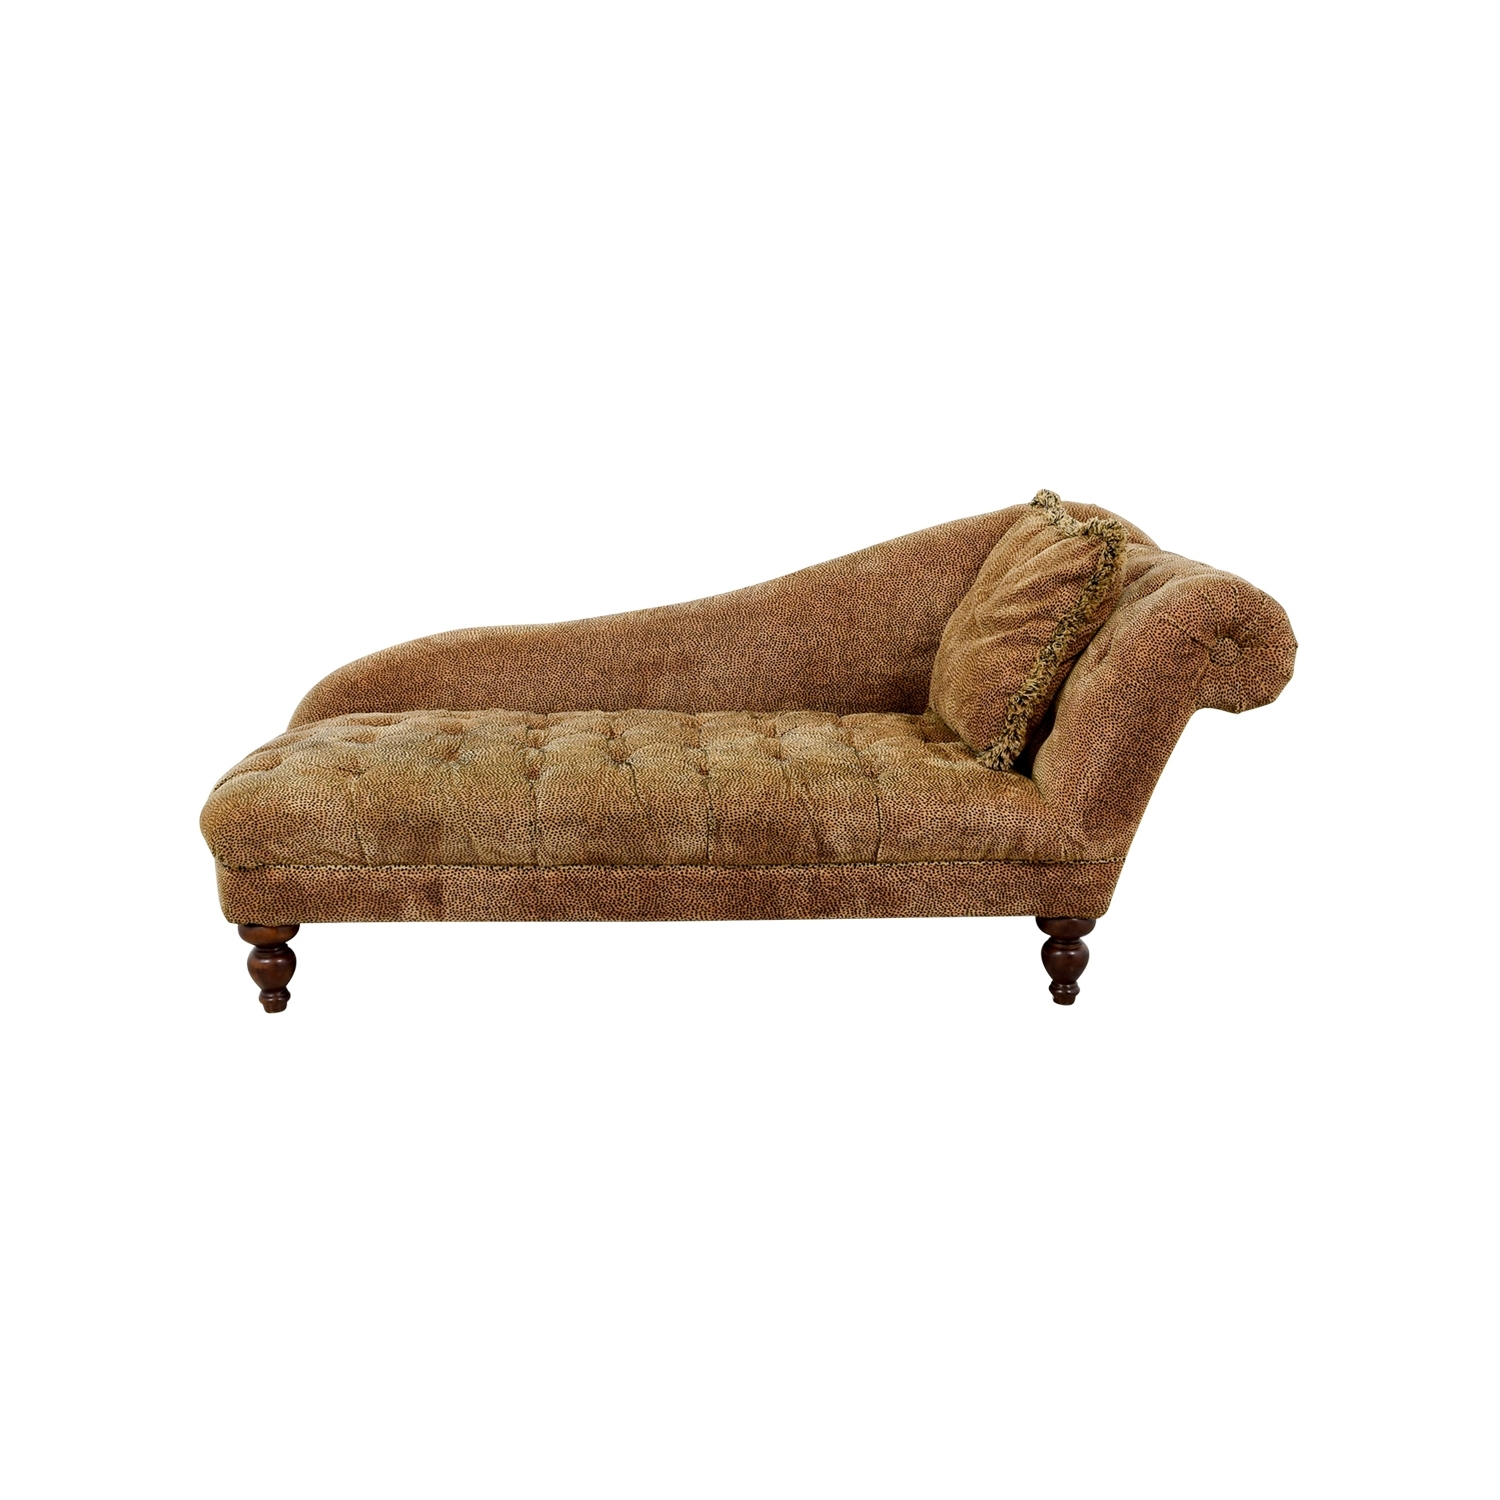 [%73% Off – Domain Home Furnishings Domain Home Furnishings Leopard Throughout Preferred Leopard Chaise Lounges Leopard Chaise Lounges With Preferred 73% Off – Domain Home Furnishings Domain Home Furnishings Leopard Latest Leopard Chaise Lounges Intended For 73% Off – Domain Home Furnishings Domain Home Furnishings Leopard Newest 73% Off – Domain Home Furnishings Domain Home Furnishings Leopard For Leopard Chaise Lounges%] (View 3 of 15)